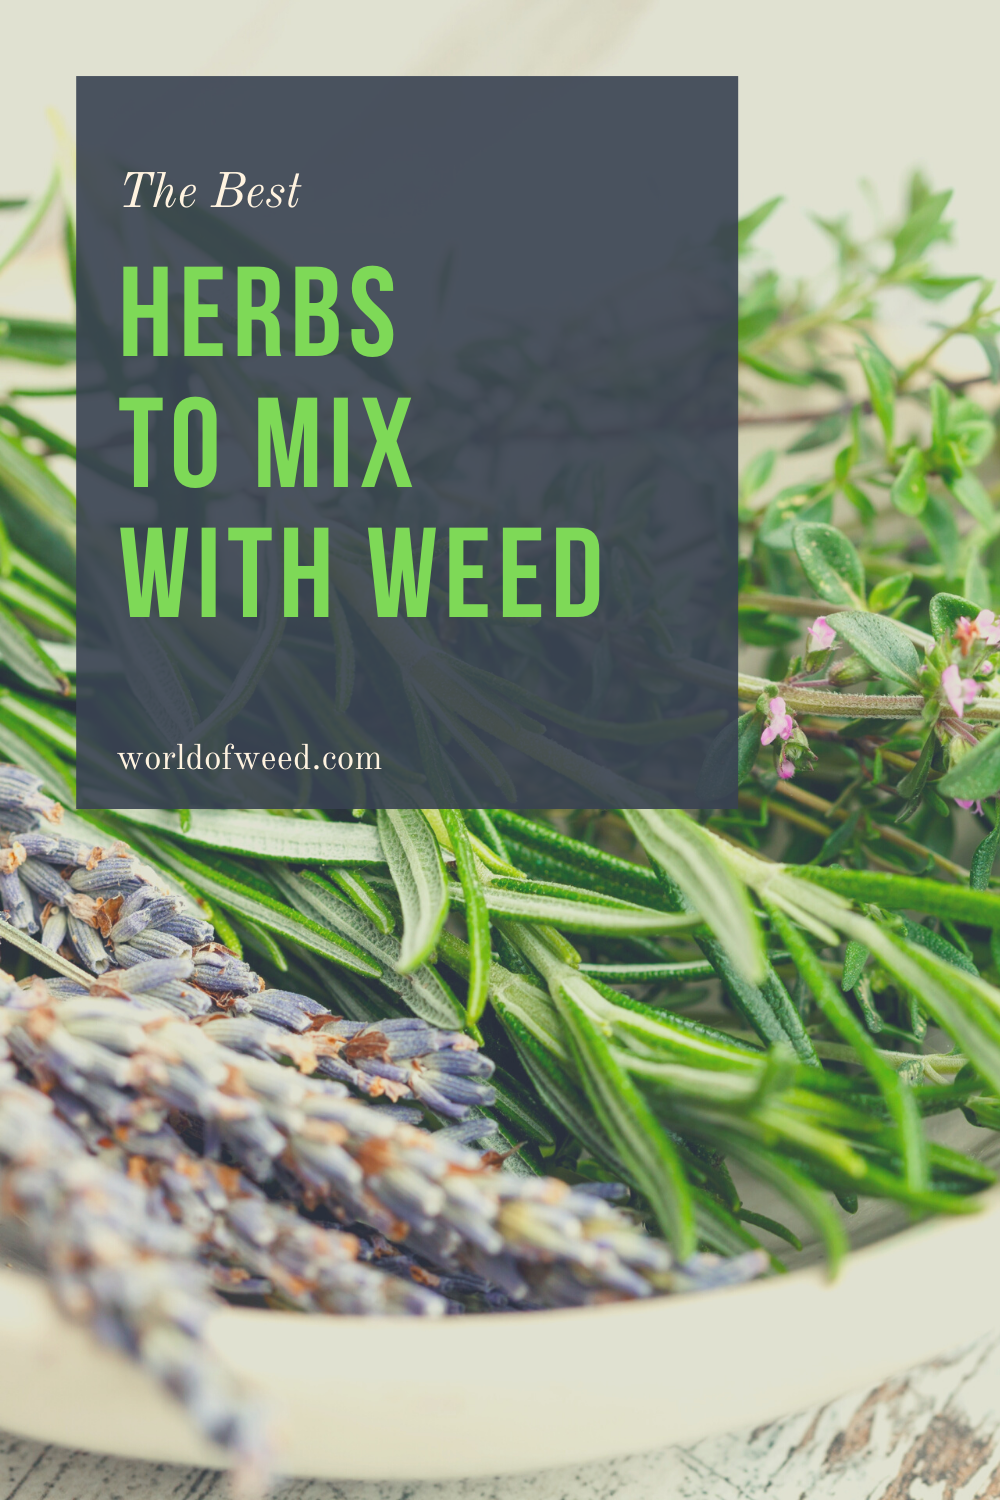 The Best Herbs to Mix With Weed